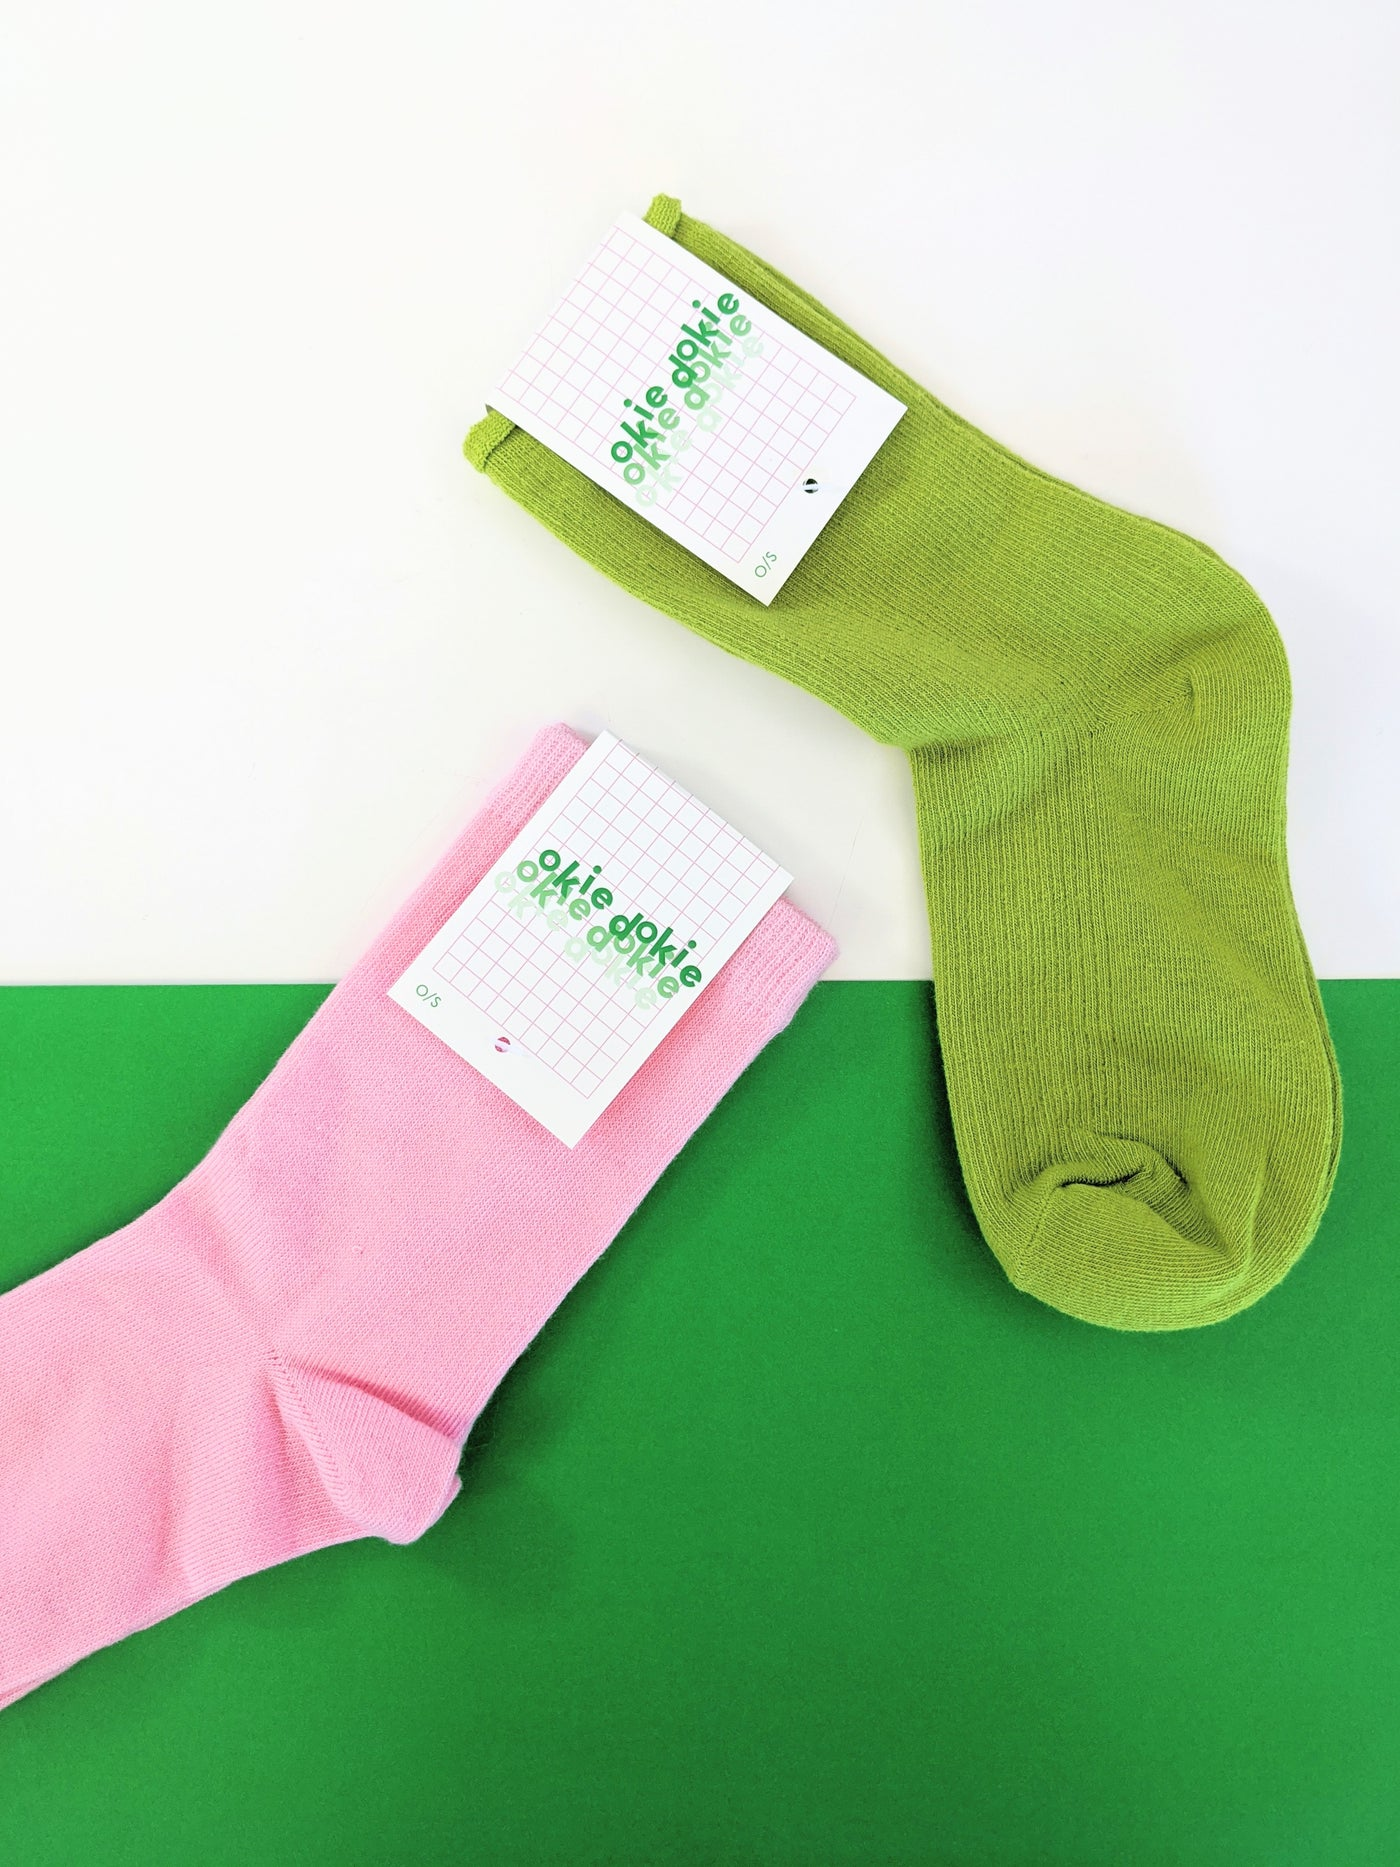 Pea Green socks by Okie Dokie available at Local Assembly